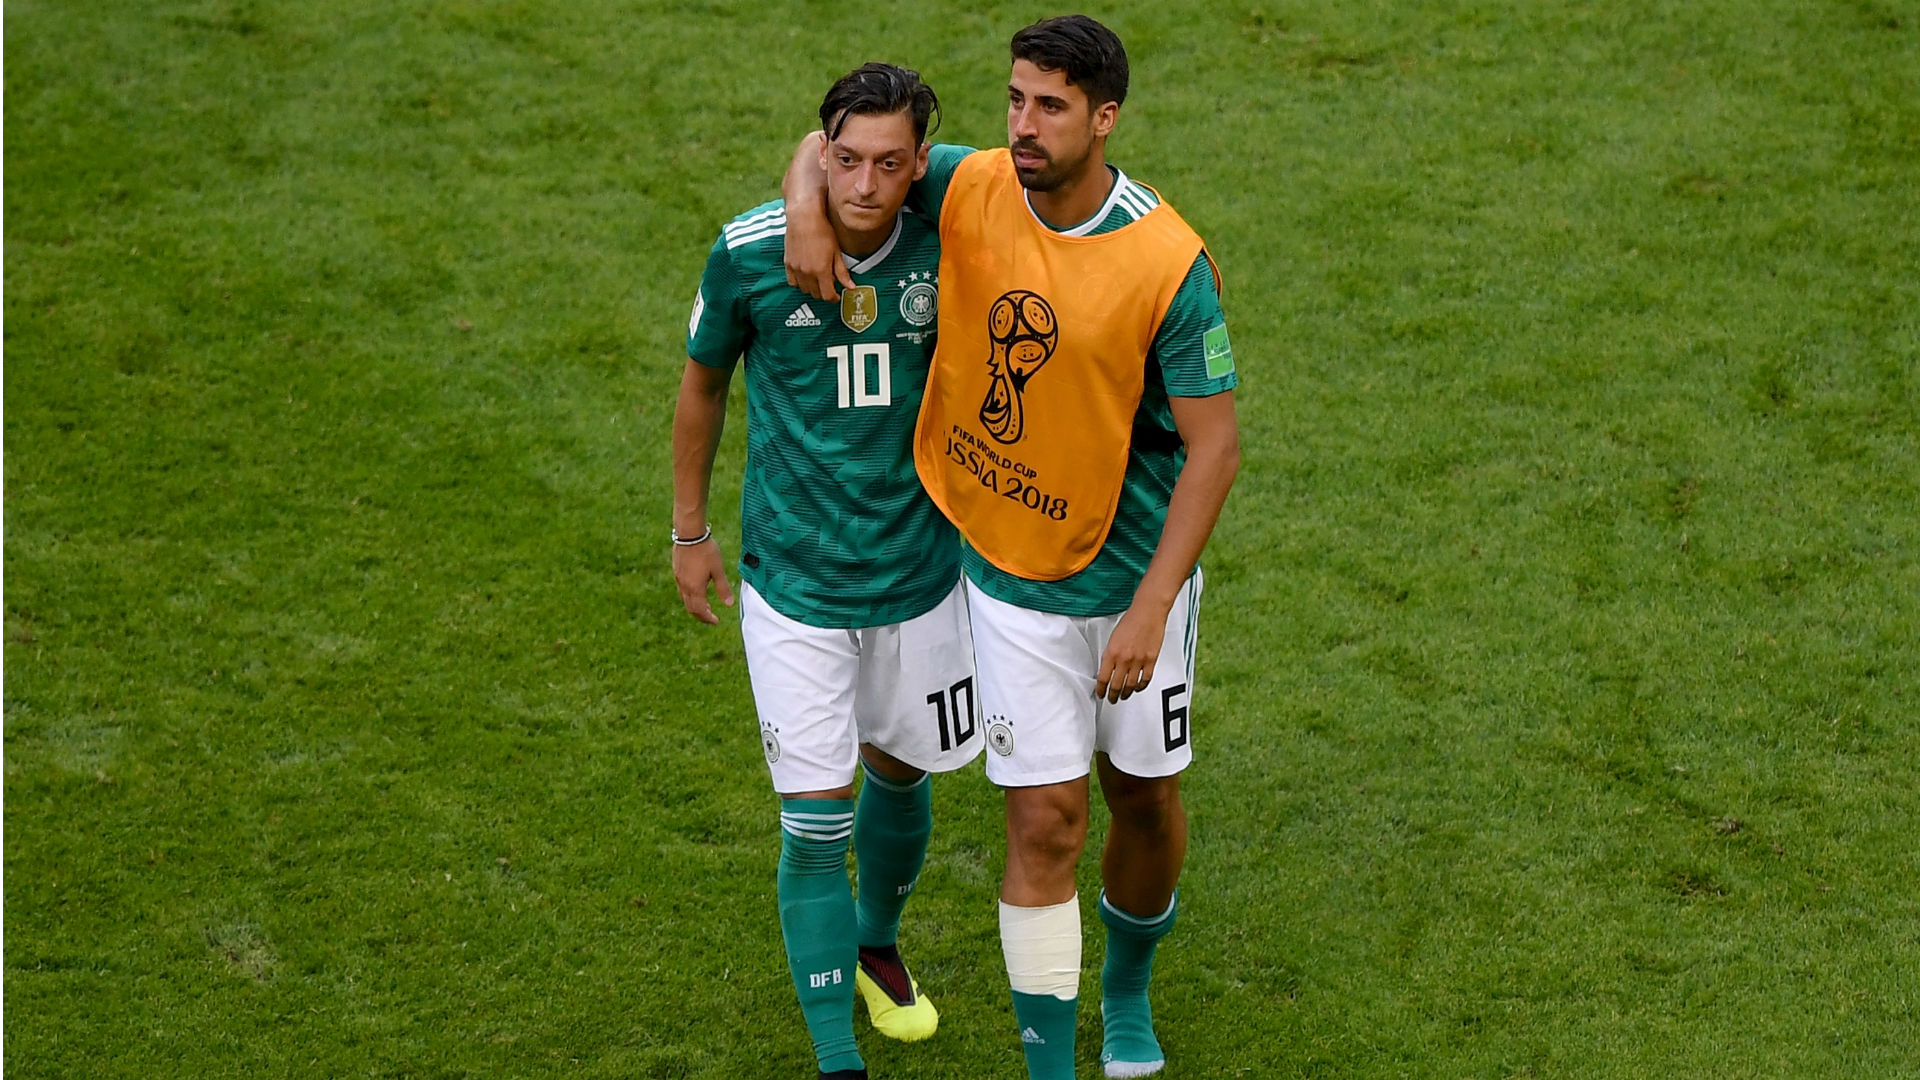 Germany's leaders must take responsibility for World Cup 'shipwreck' – Khedira